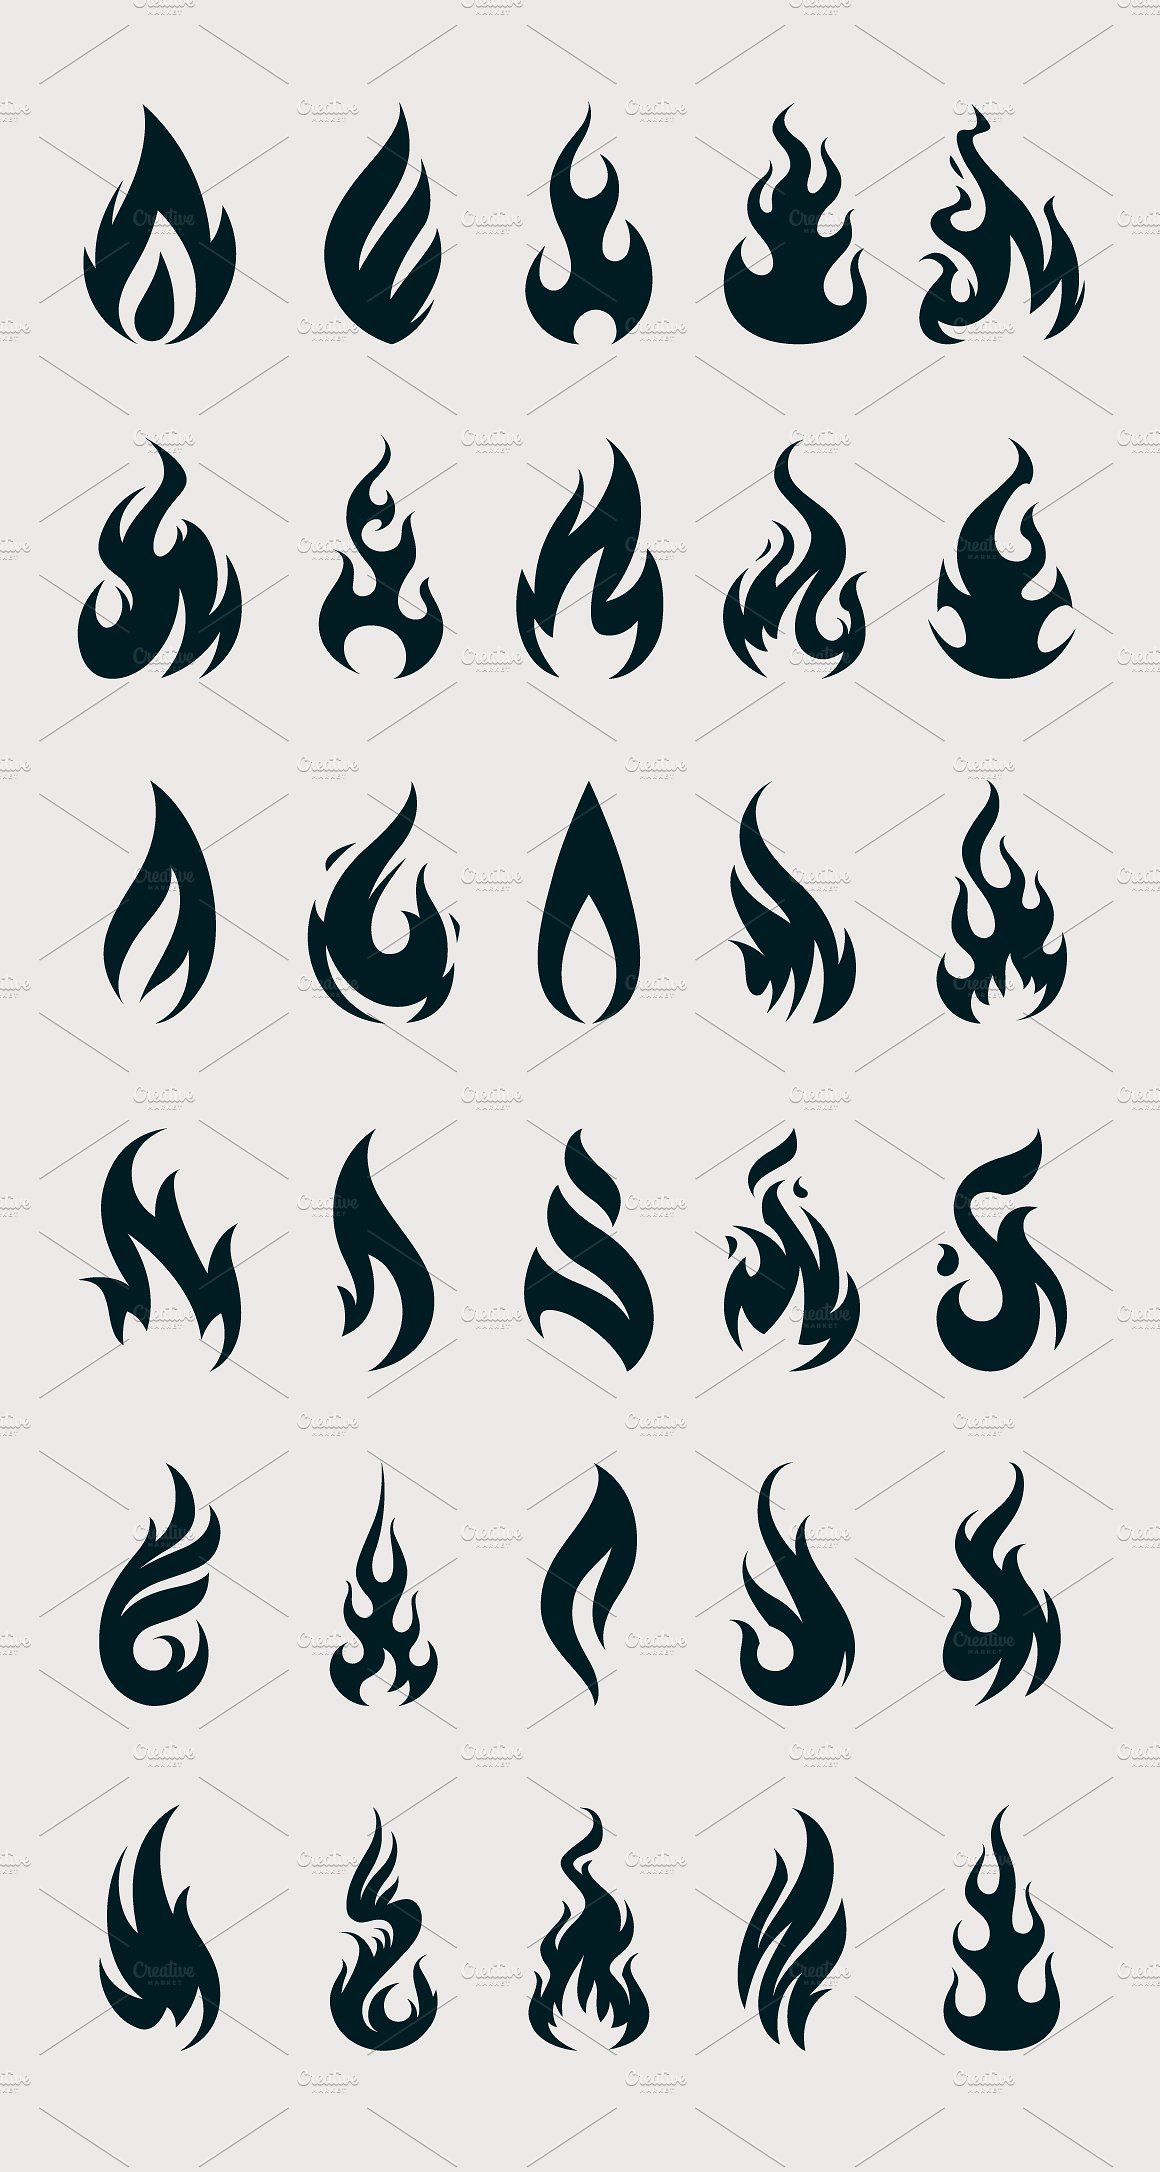 Vector Fire Icons Fire icons, Flame tattoos, Flame art